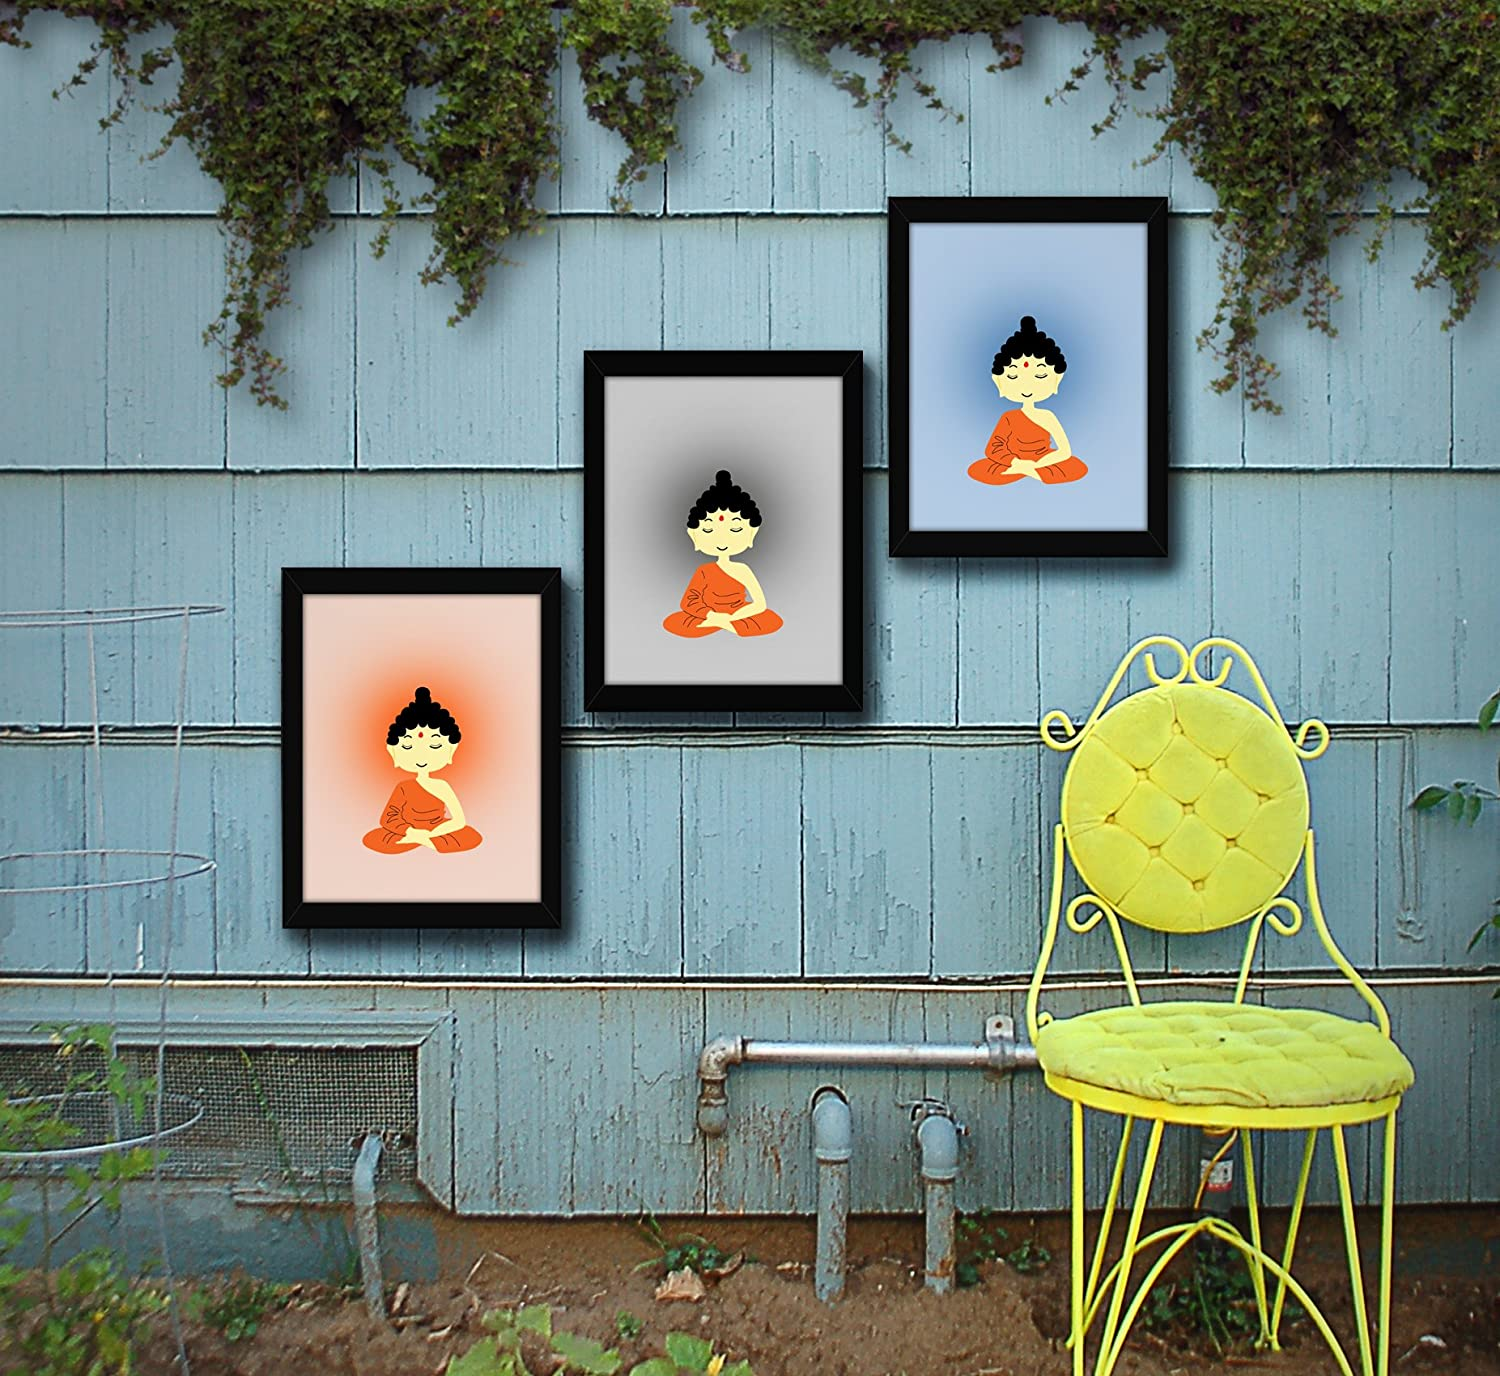 Tied Ribbons Meditating Buddha Wall Art Outdoor Wall Decor Garden Decor Item Wall Hanging Poster Set Of 3 13 6 Inch X 10 2 Inch Amazon In Home Kitchen